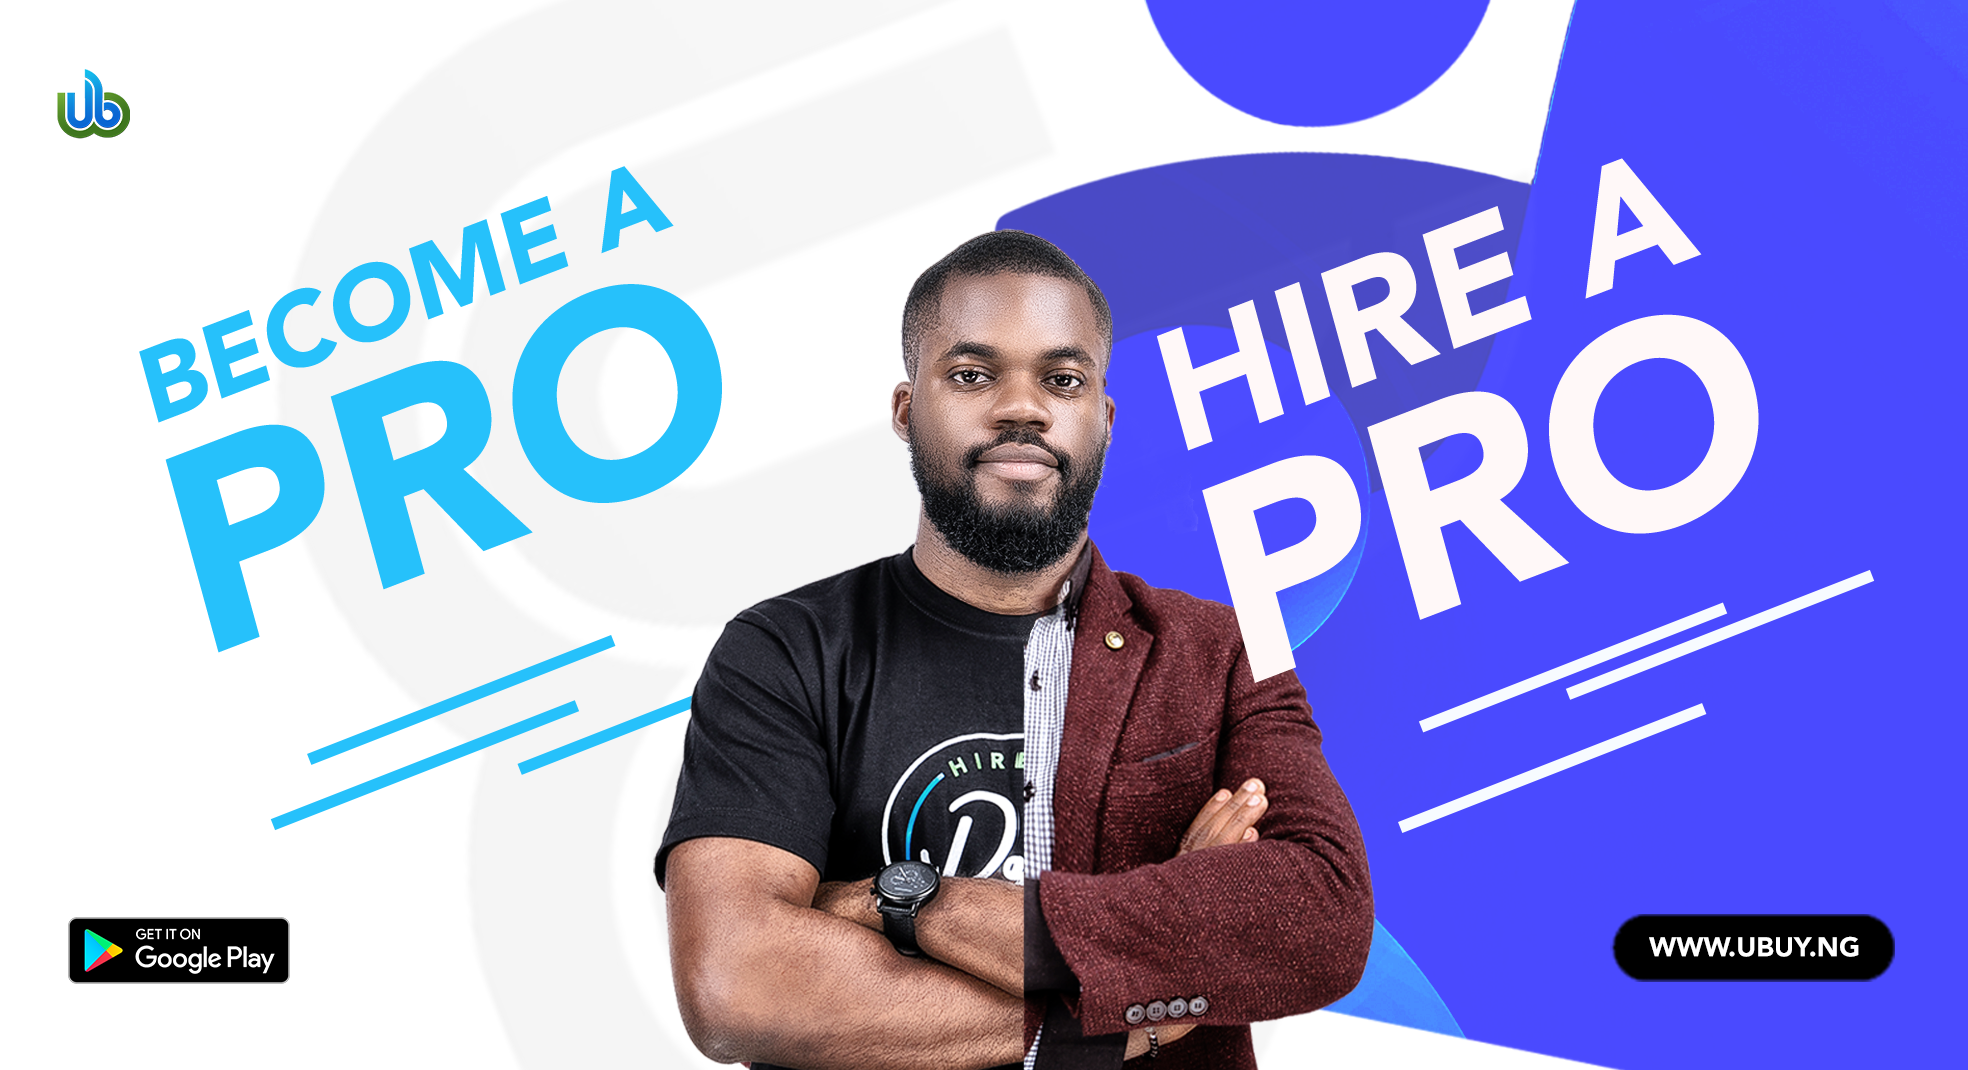 Ubuy Nigeria Local business owner, Professions, Wedding pets